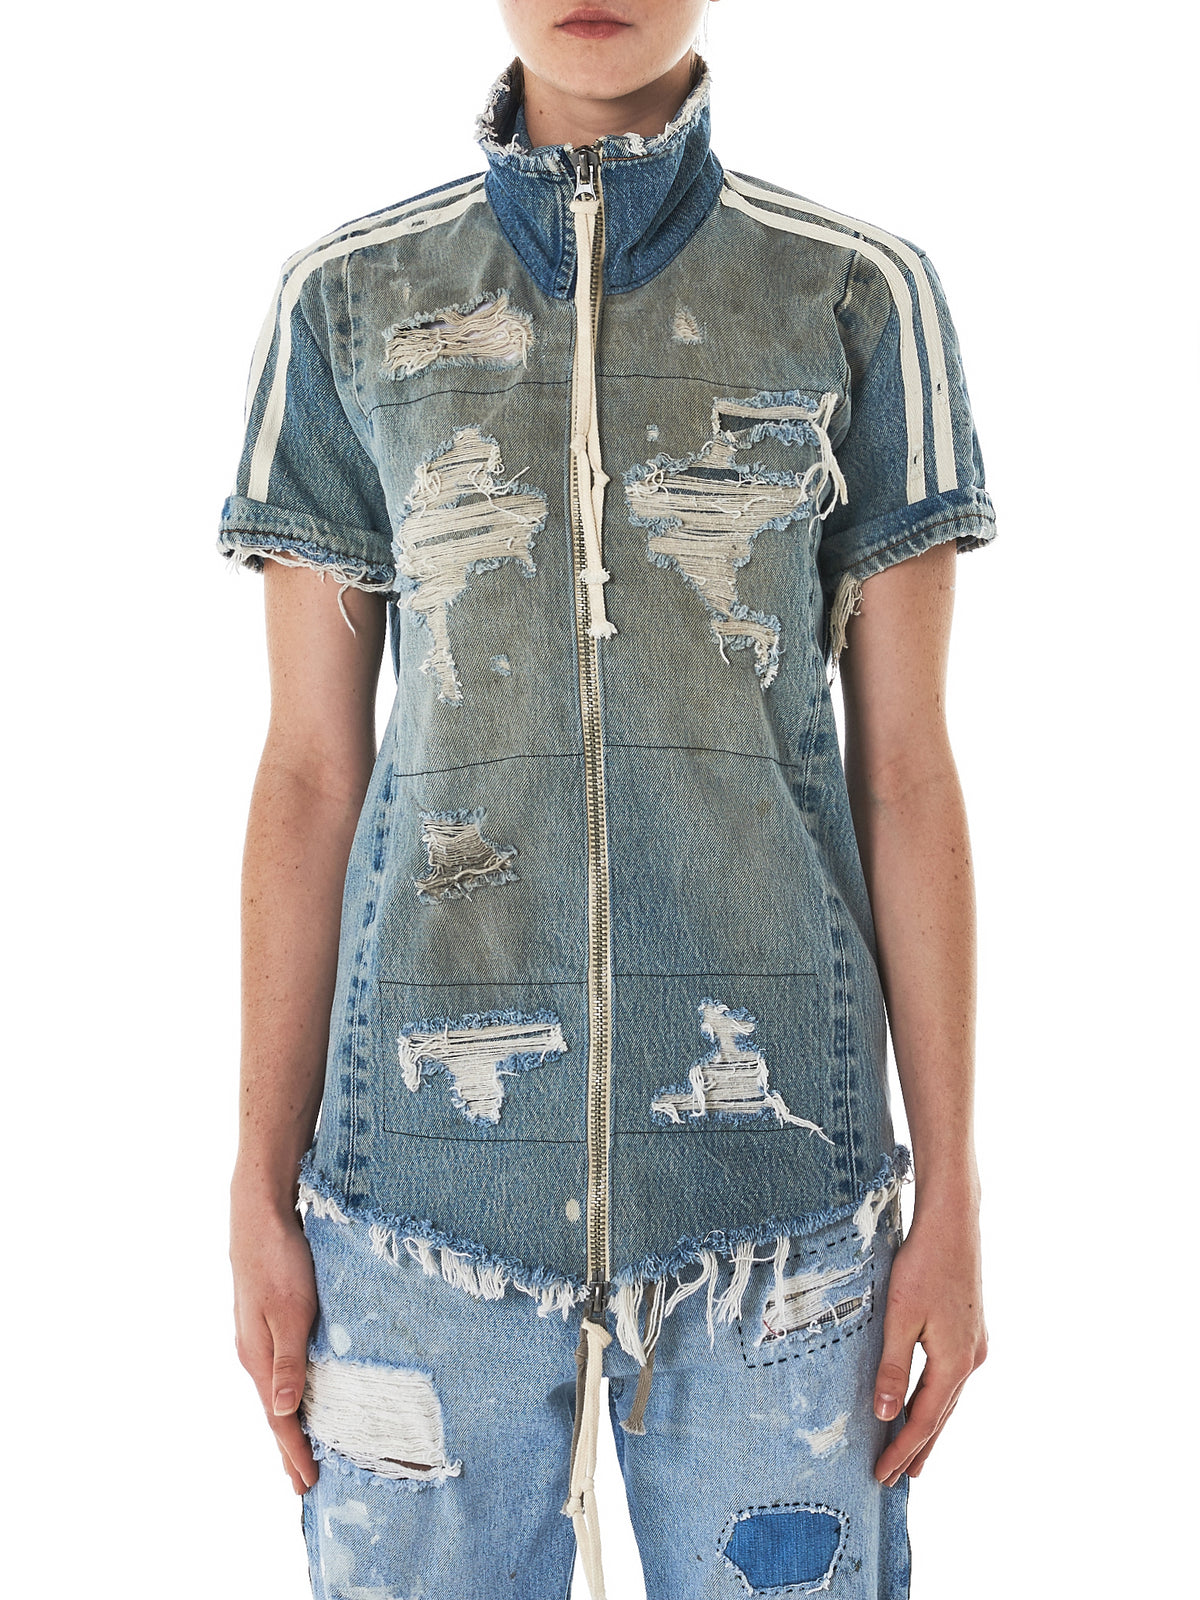 Greg Lauren Denim Track Shirt - Hlorenzo Front